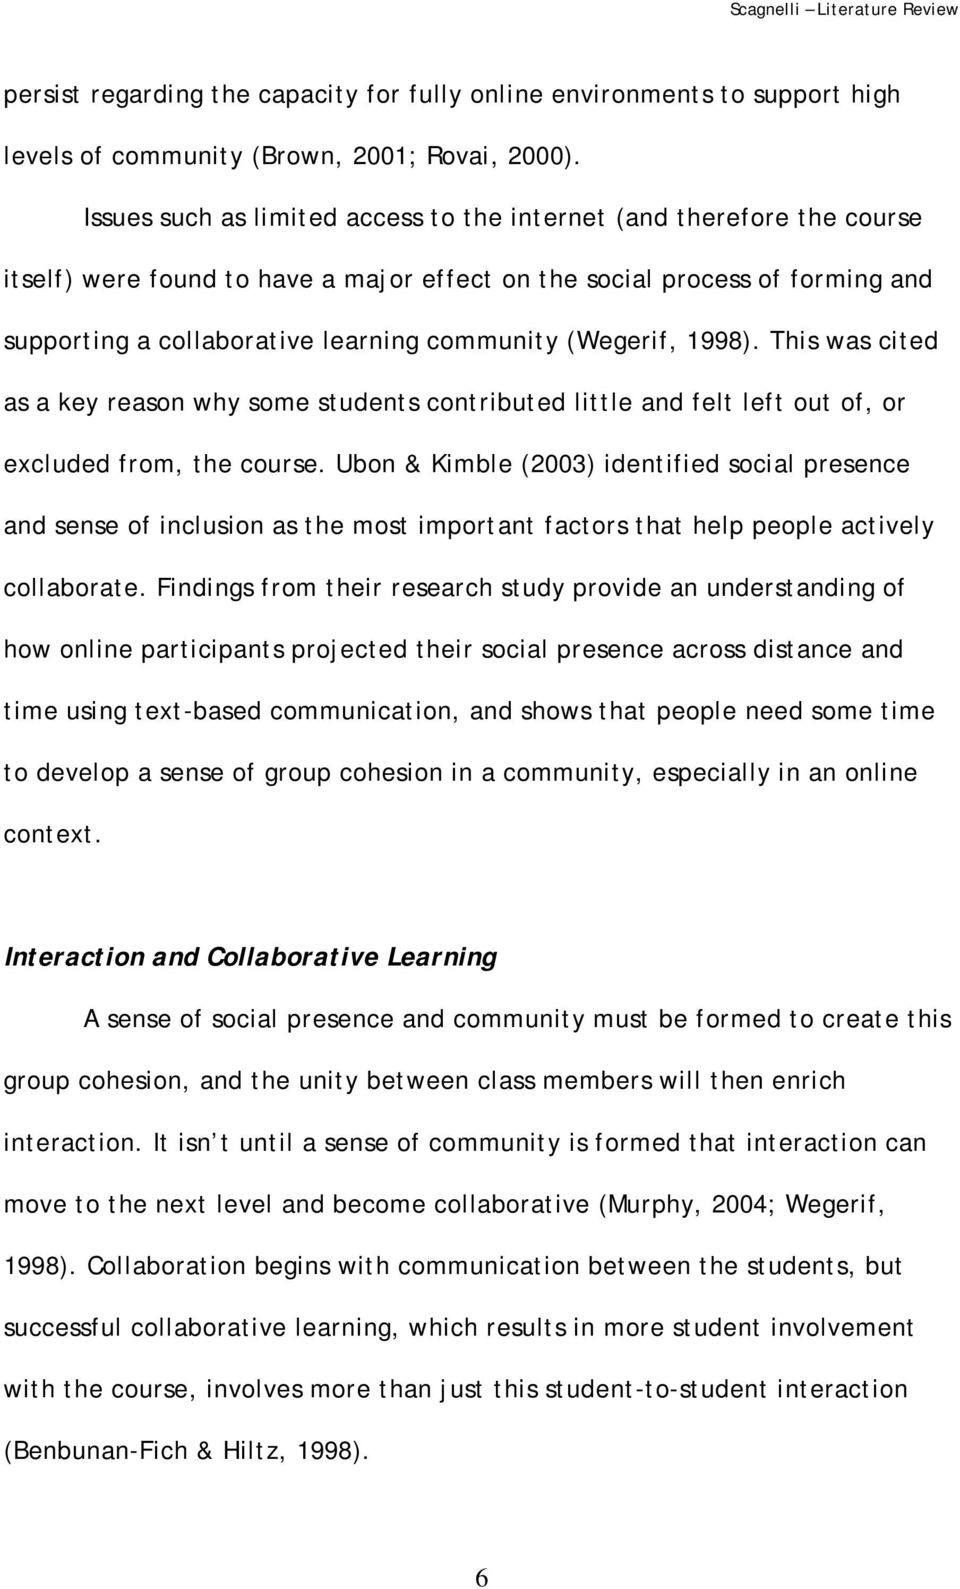 (Wegerif, 1998). This was cited as a key reason why some students contributed little and felt left out of, or excluded from, the course.